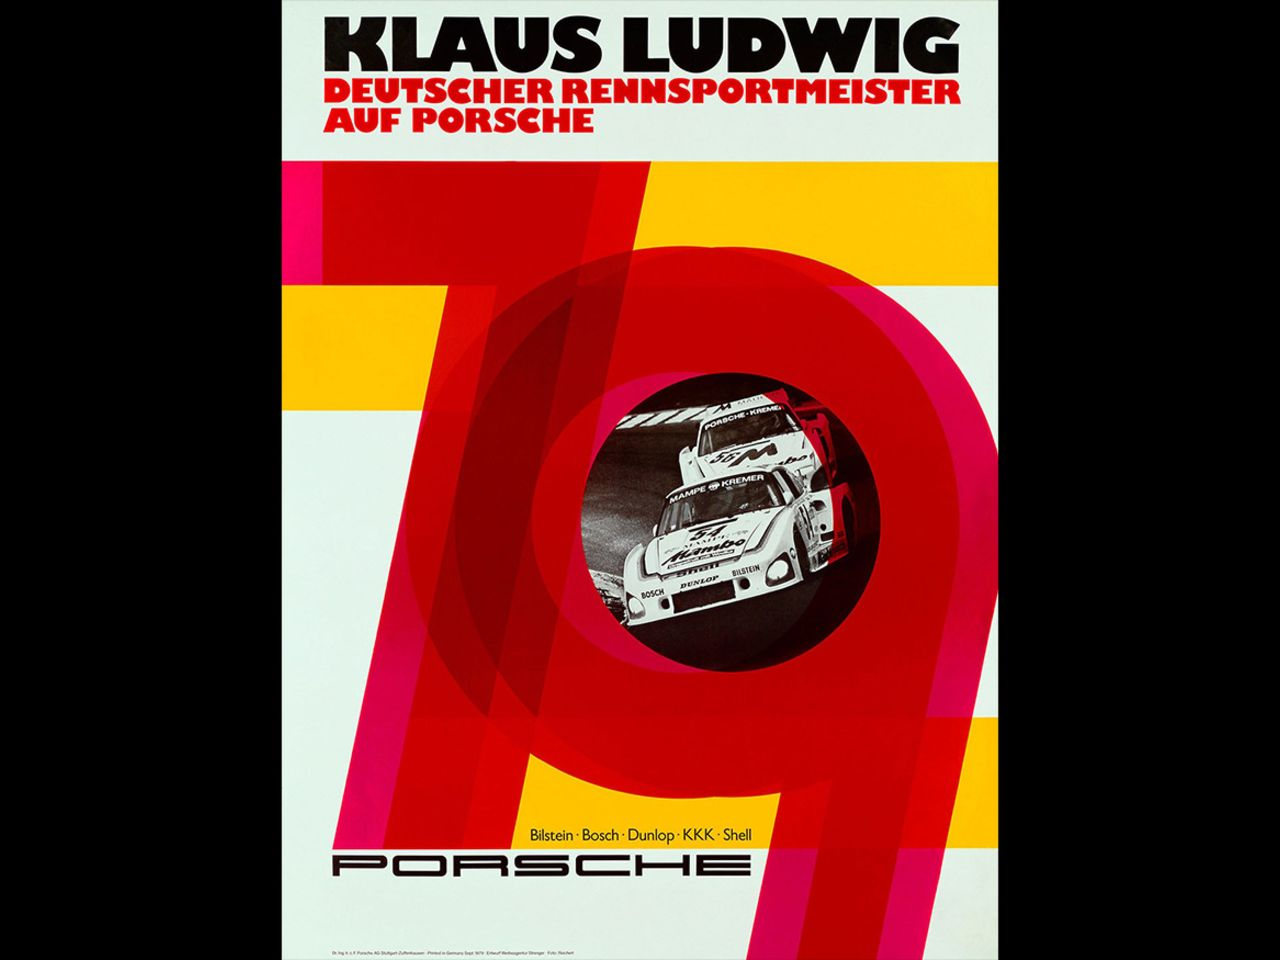 The visuals also reflect the progression of time. This one, which announces Klaus Ludwig's victory in the 1979 German Racing Championship (DRM), contains typical design features of the 1970s.